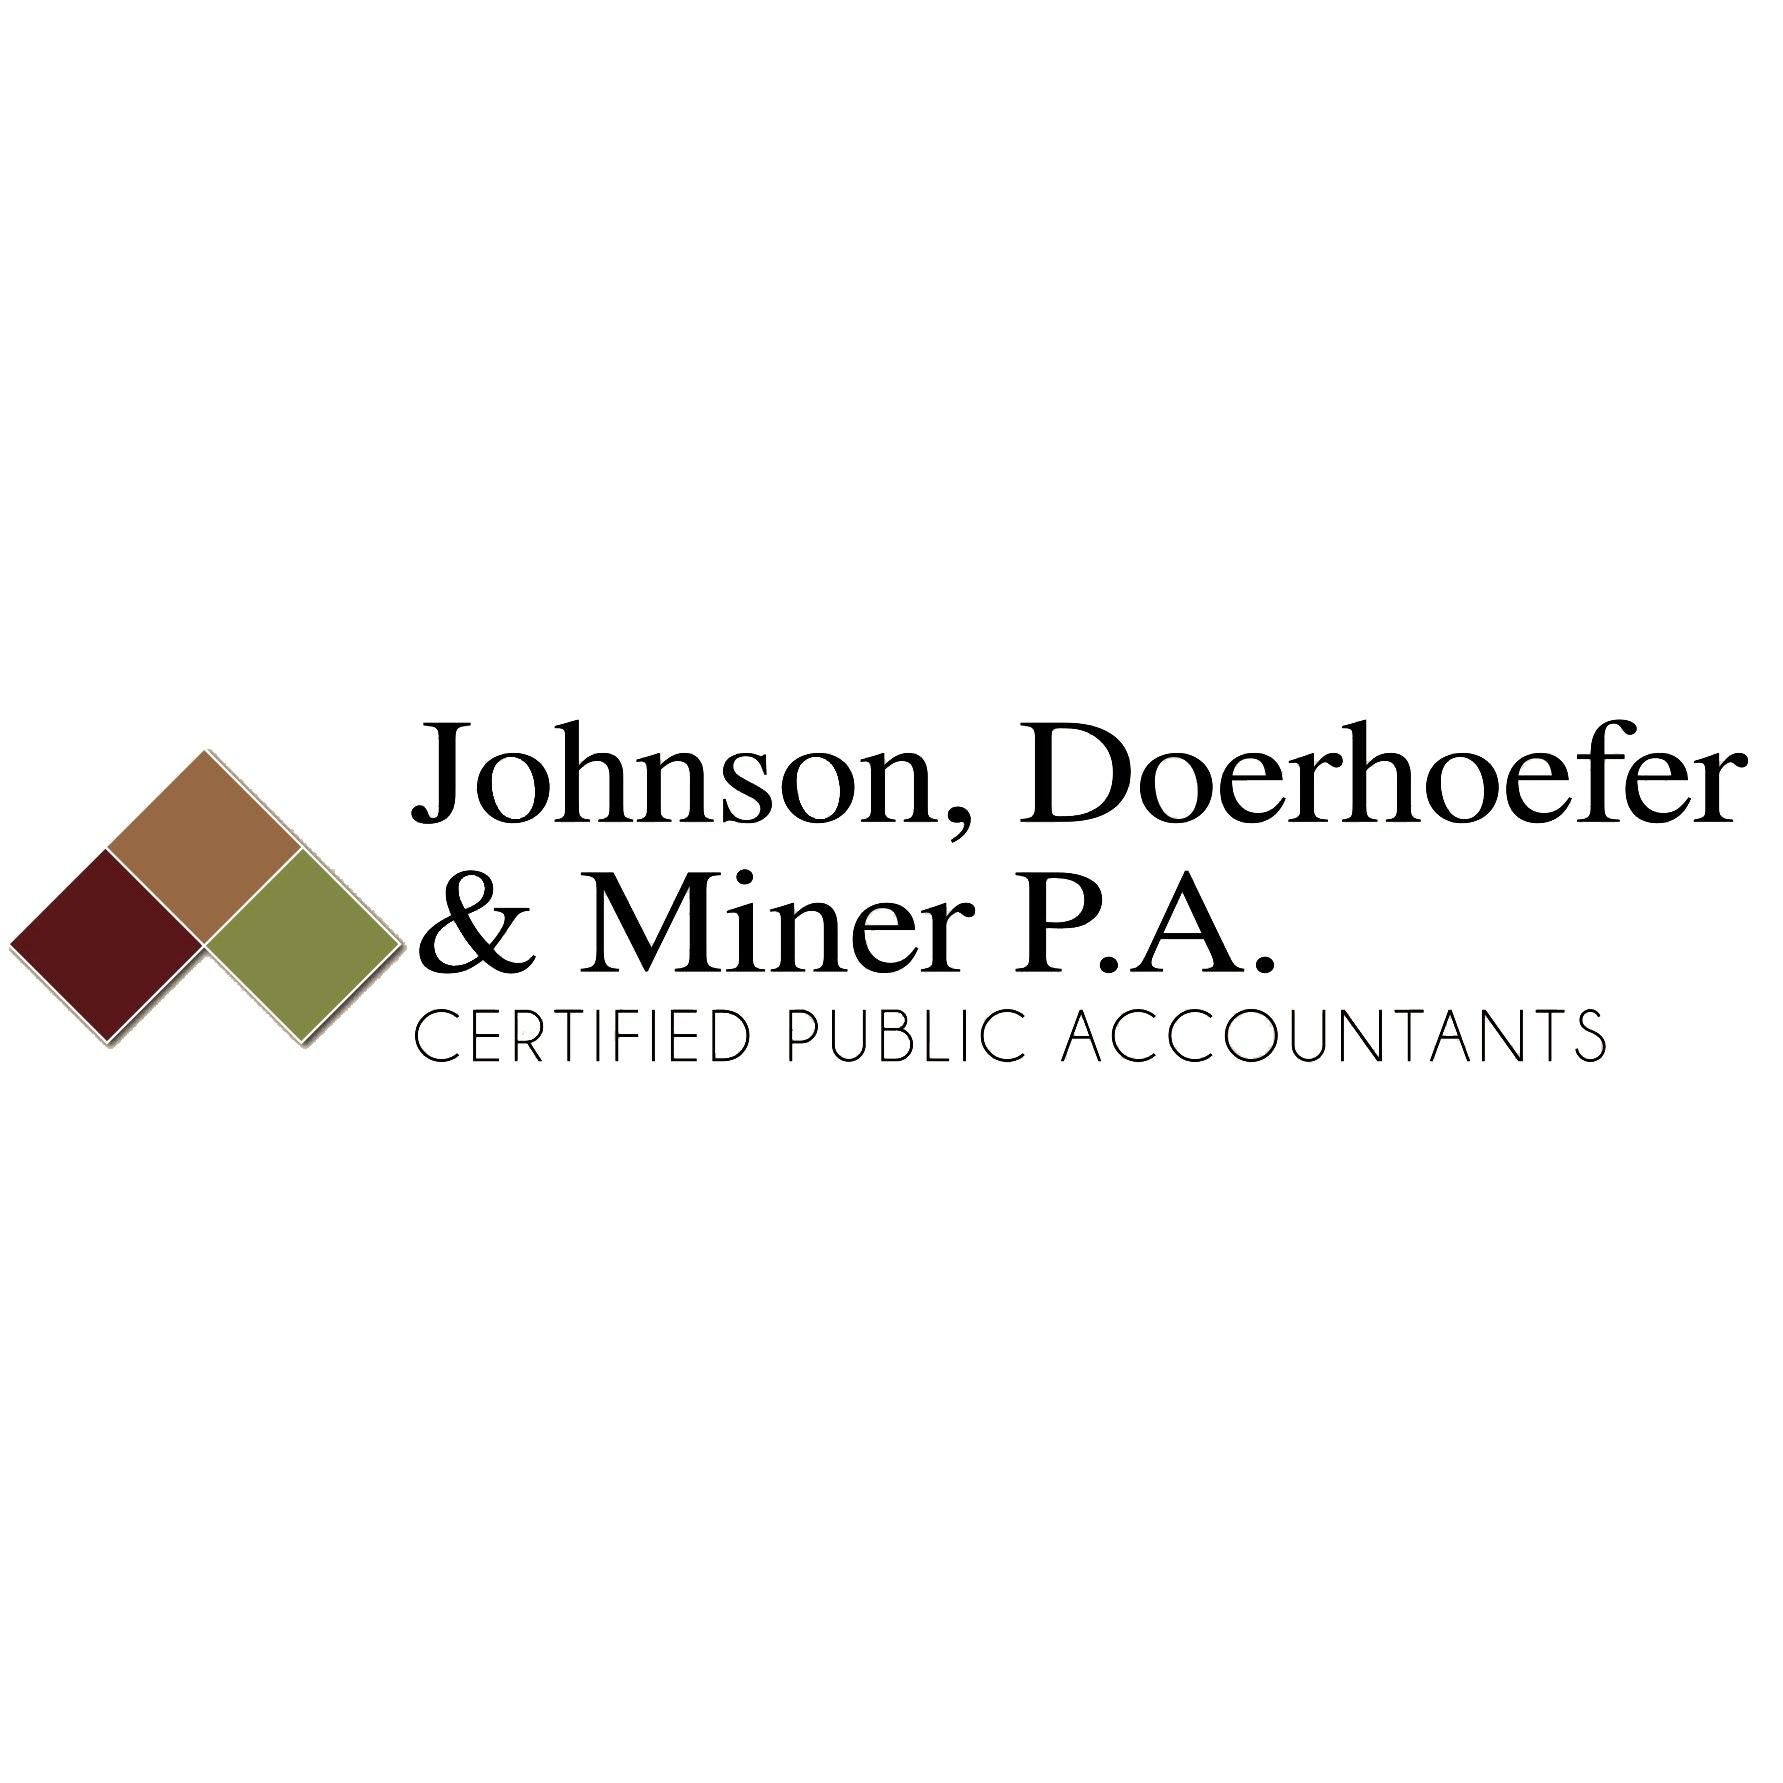 Johnson, Doerhoefer & Miner P.A. - Blooming Prairie, MN 55917 - (507)583-7528 | ShowMeLocal.com